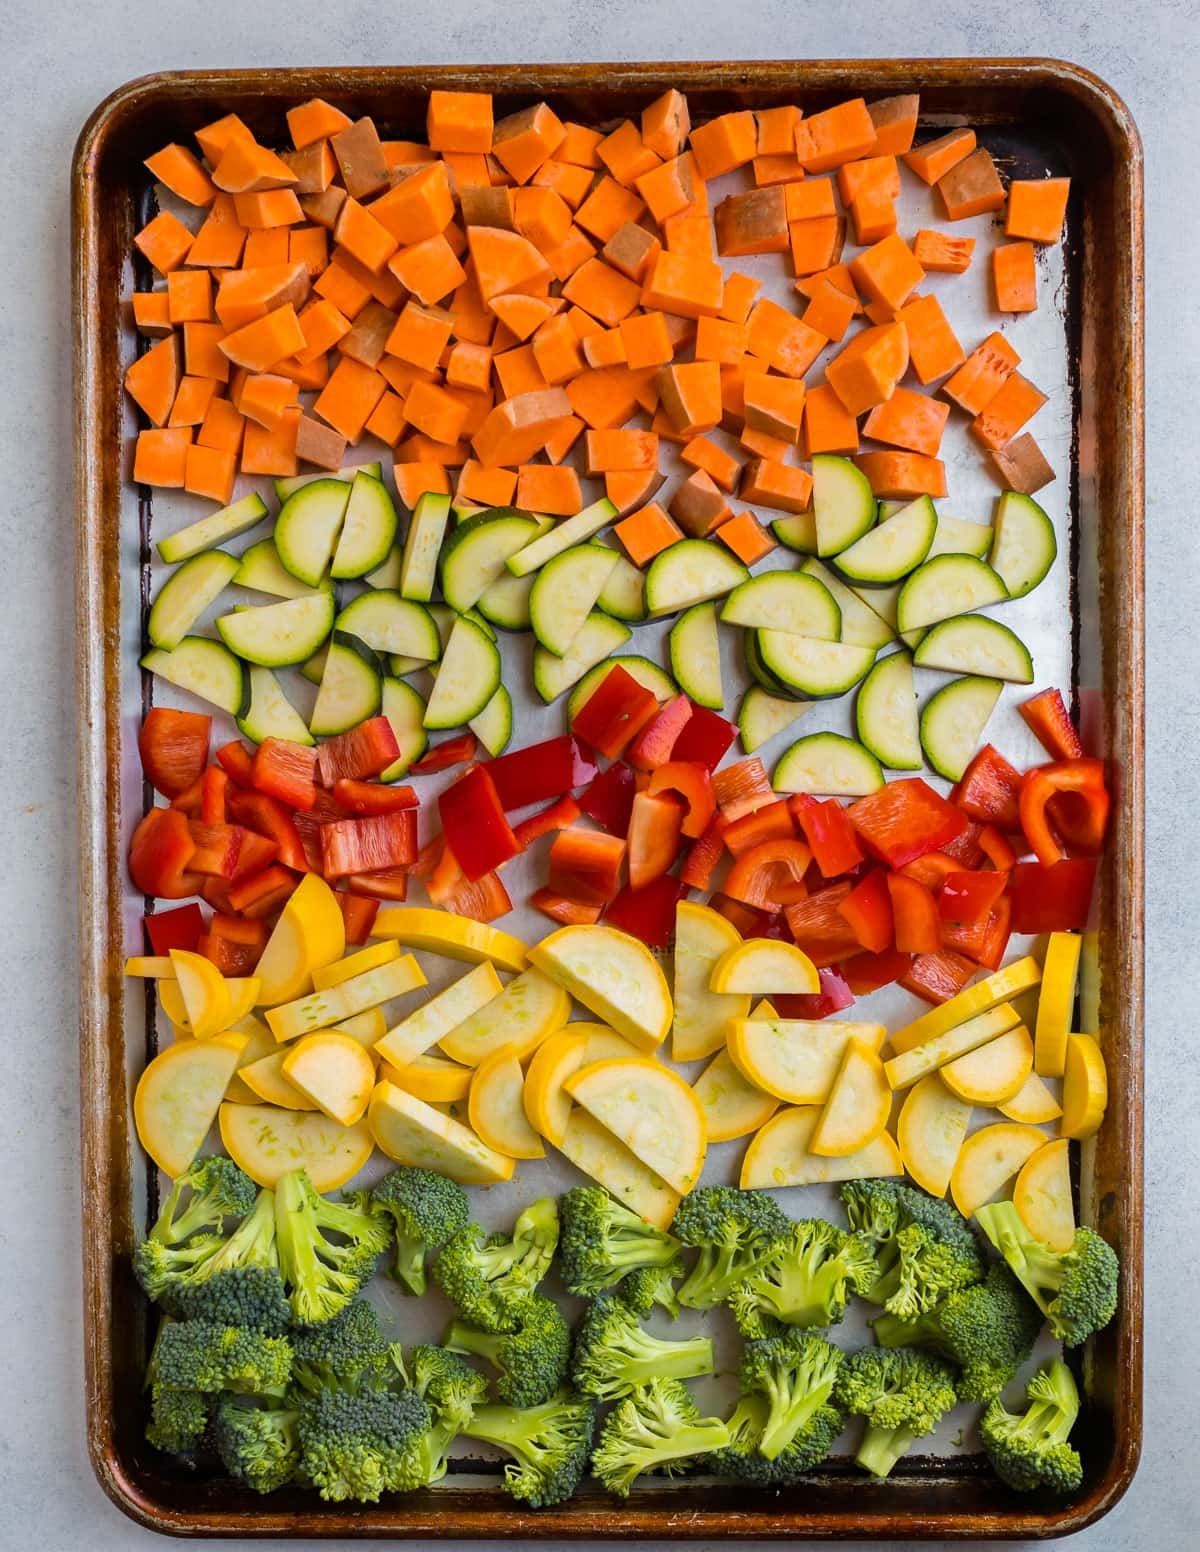 Chopped sweet potatoes, zucchini, peppers, squash, and broccoli on a baking sheet